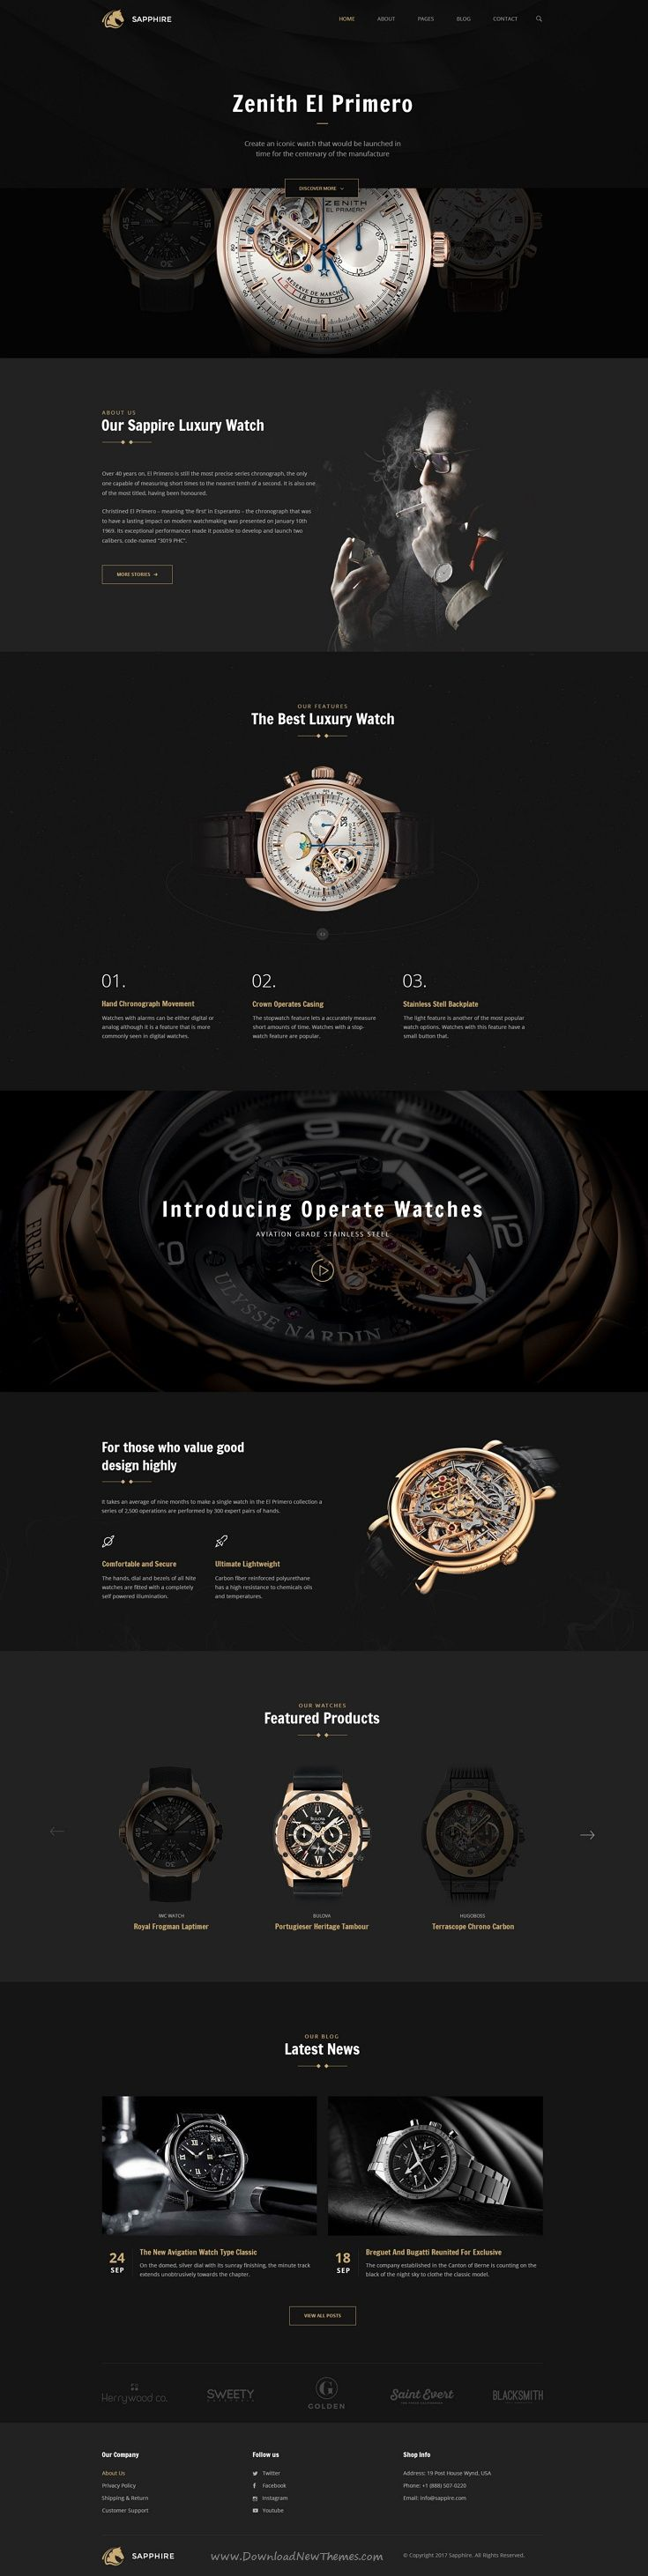 Sapphire is a wonderful #PSD template for #watch store and #luxury products eCommerce website with 13 organized PSD pages download now➩ https://themeforest.net/item/sapphire-luxury-watch-retail-psd-template/19241275?ref=Datasata